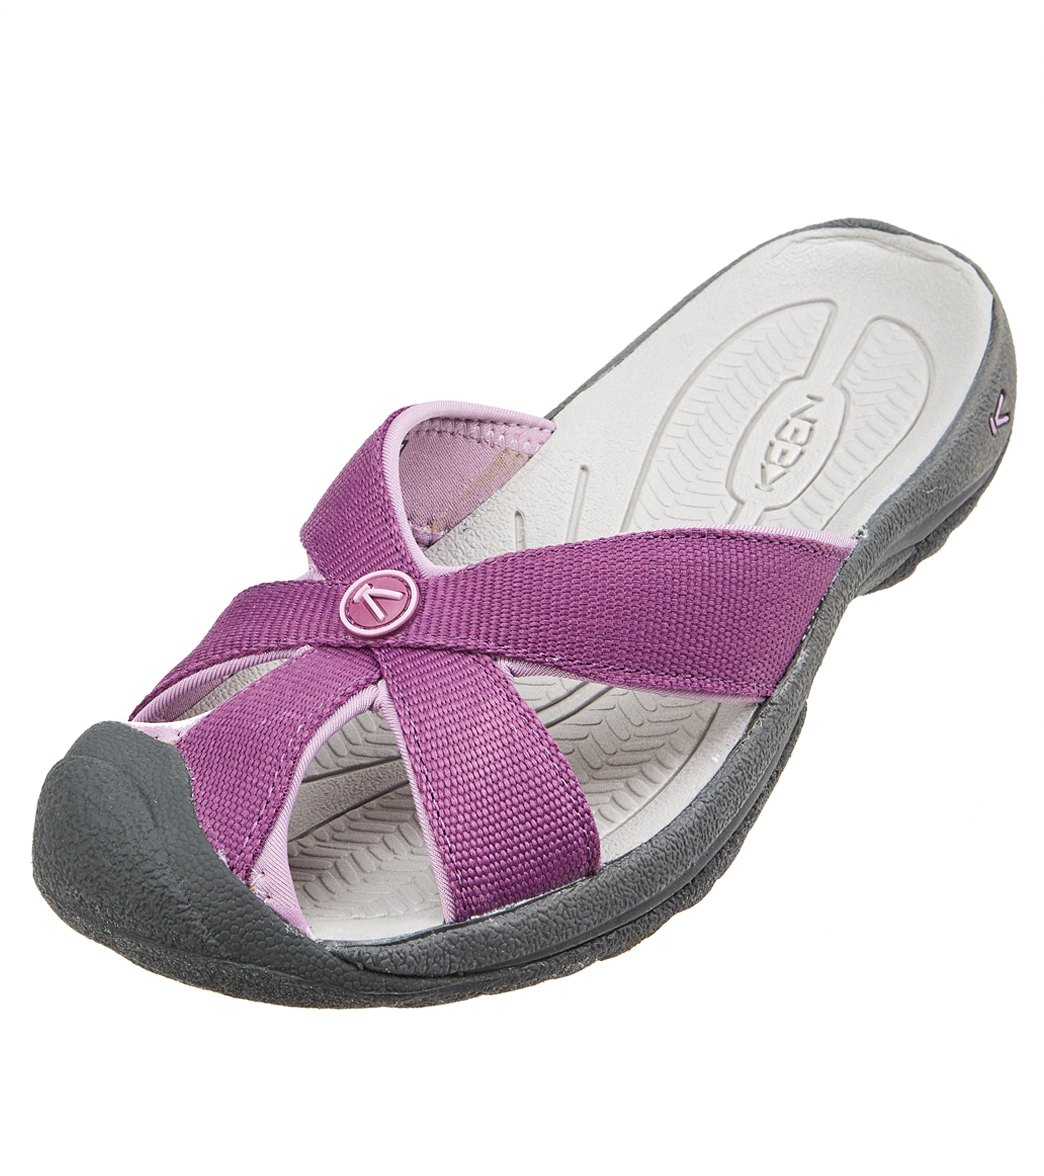 ab10c9741af8a Keen Women s Bali Water Shoes at SwimOutlet.com - Free Shipping